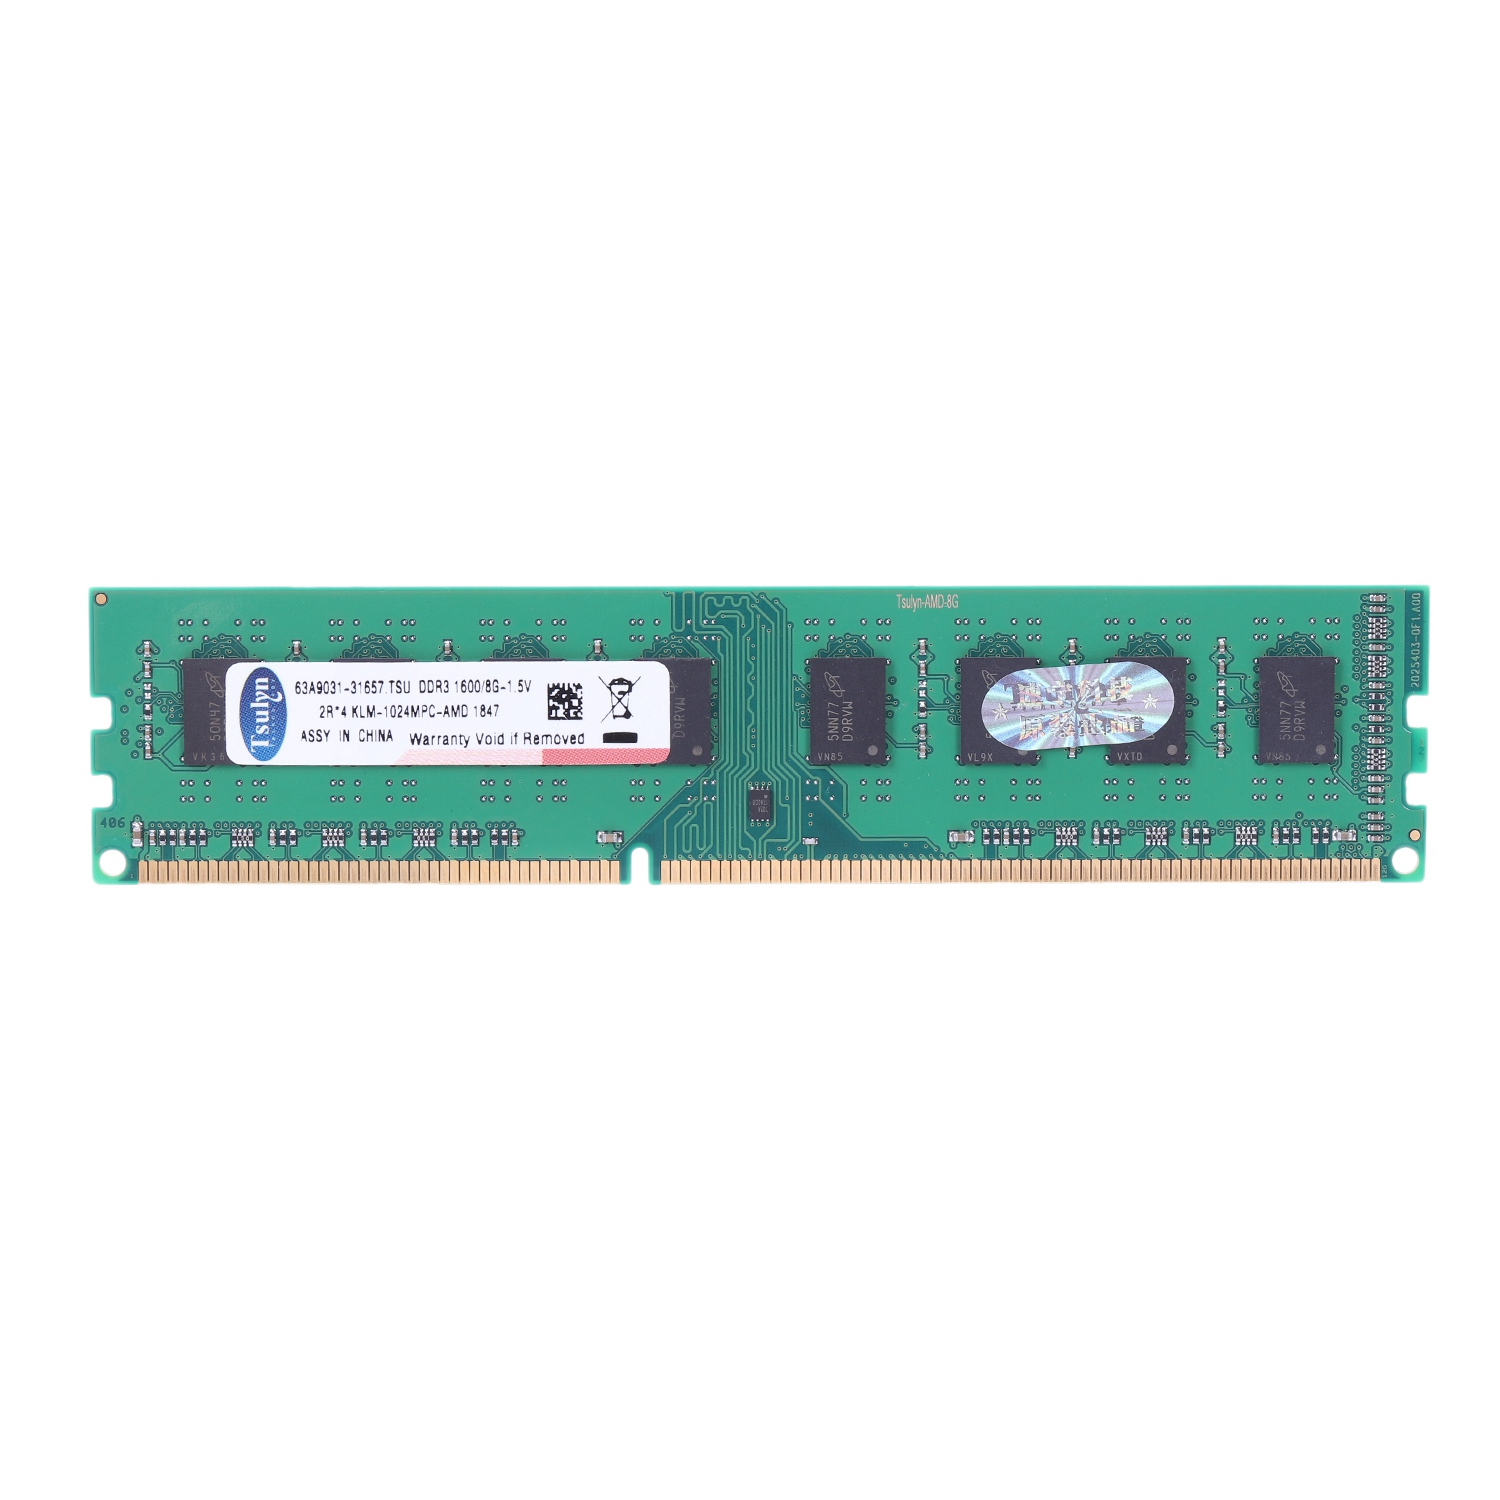 Tsulyn 8Gb Ddr3 1600Mhz Ram Desktop Memory Dimm Only For Amd F2 M2 Computer Pc image